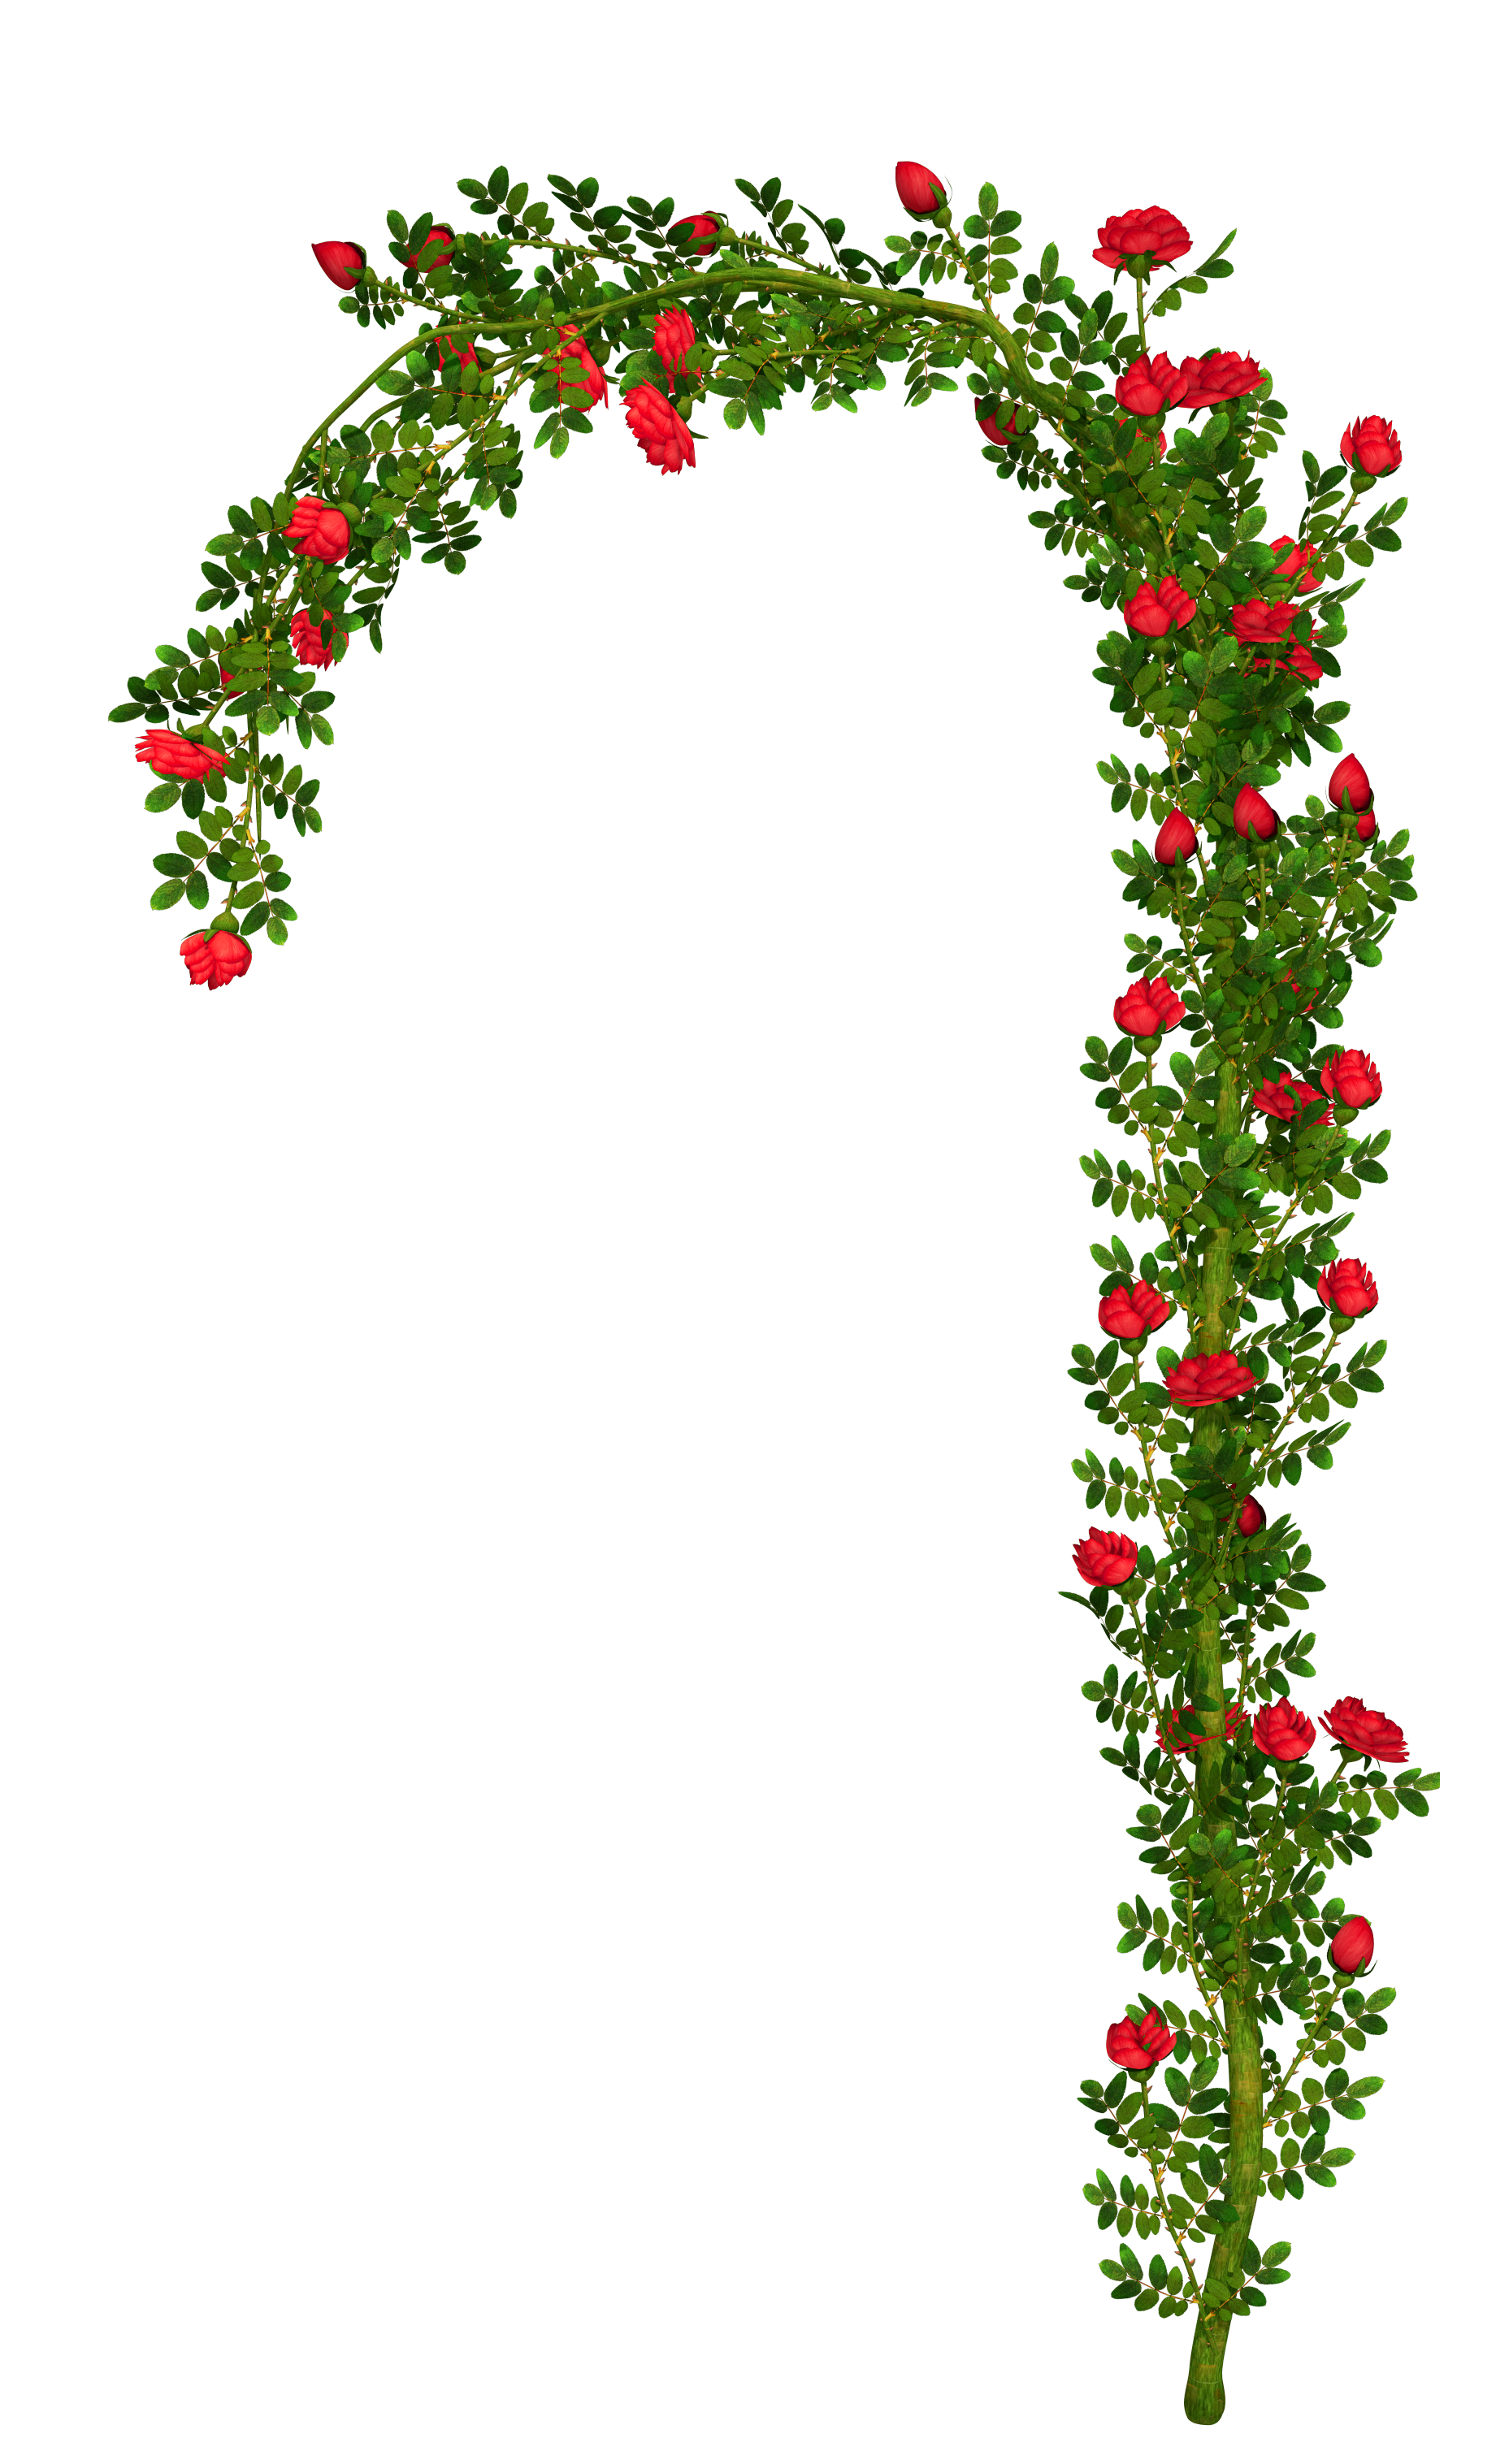 Arch flower free watercolor. Garland clipart library